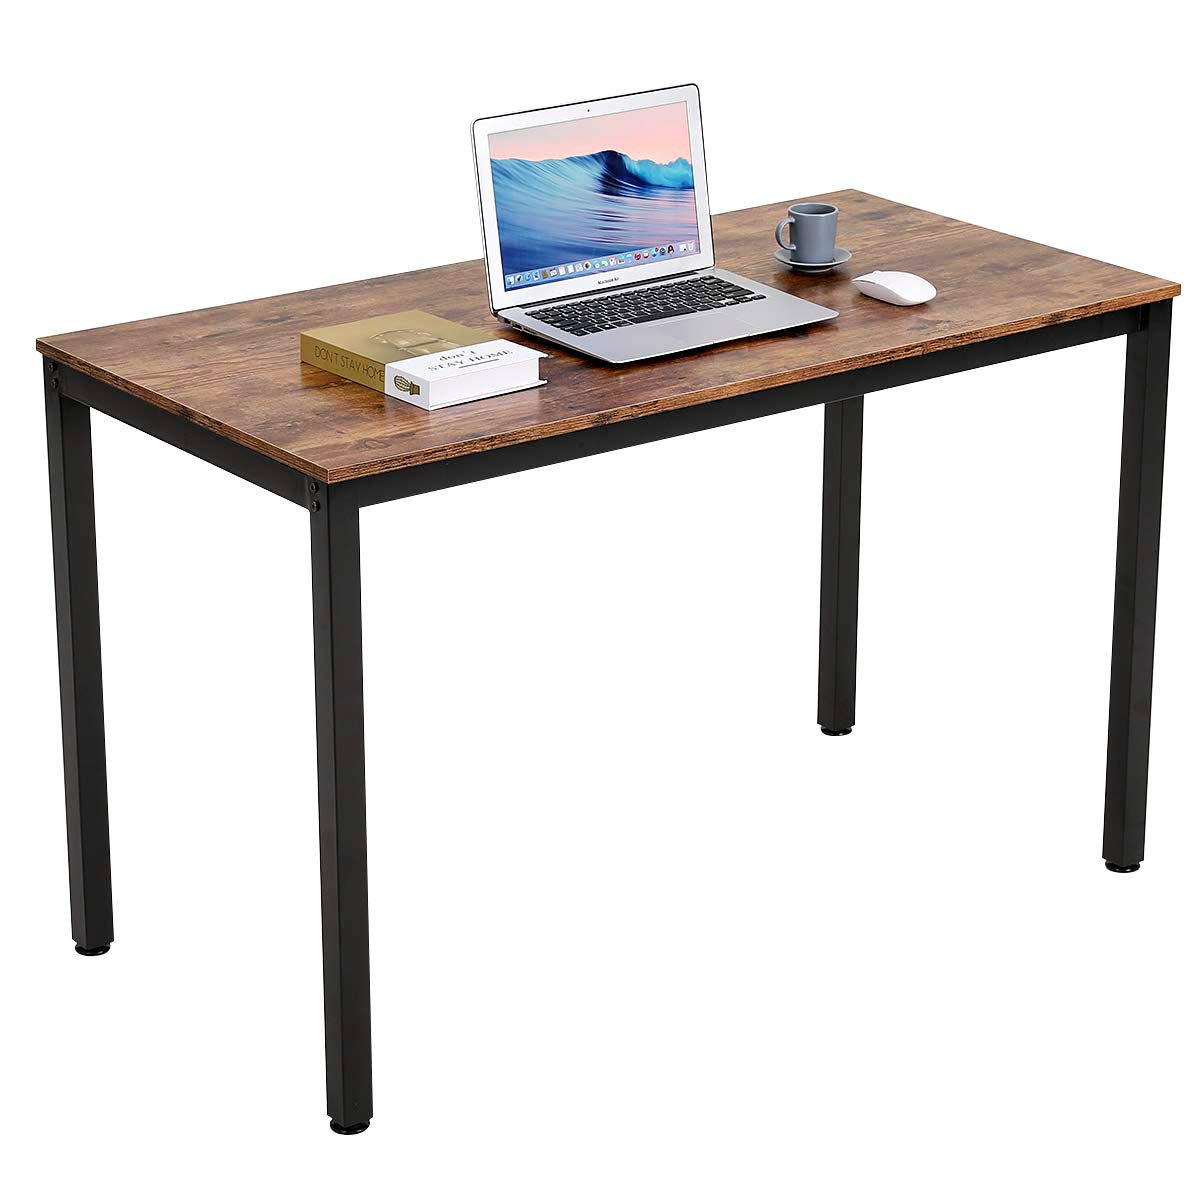 Writing Computer Desk Modern, Bonzy Home Computer Desk for Home Office, Sturdy Writing Desk Study Table Gaming Table Brown